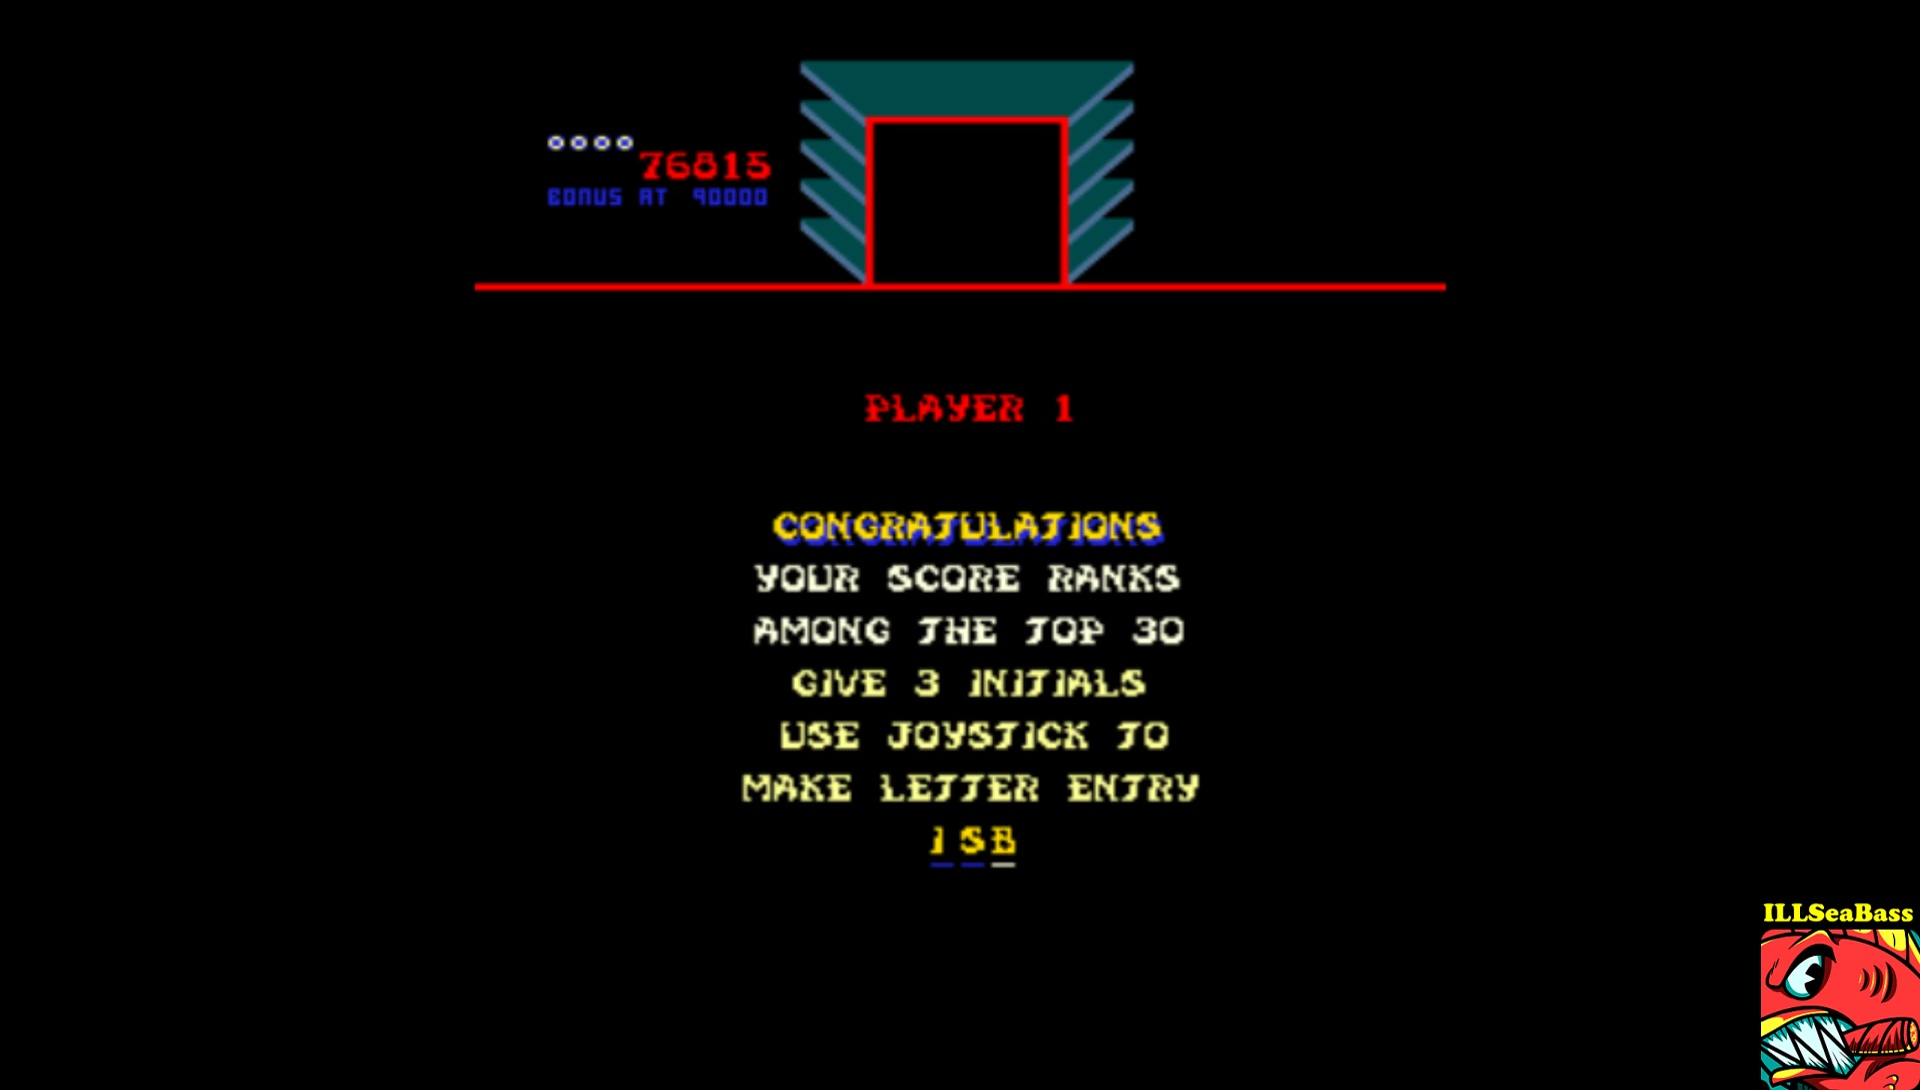 ILLSeaBass: Midway Arcade Treasures: Sinistar (GameCube Emulated) 76,815 points on 2017-05-22 20:08:01